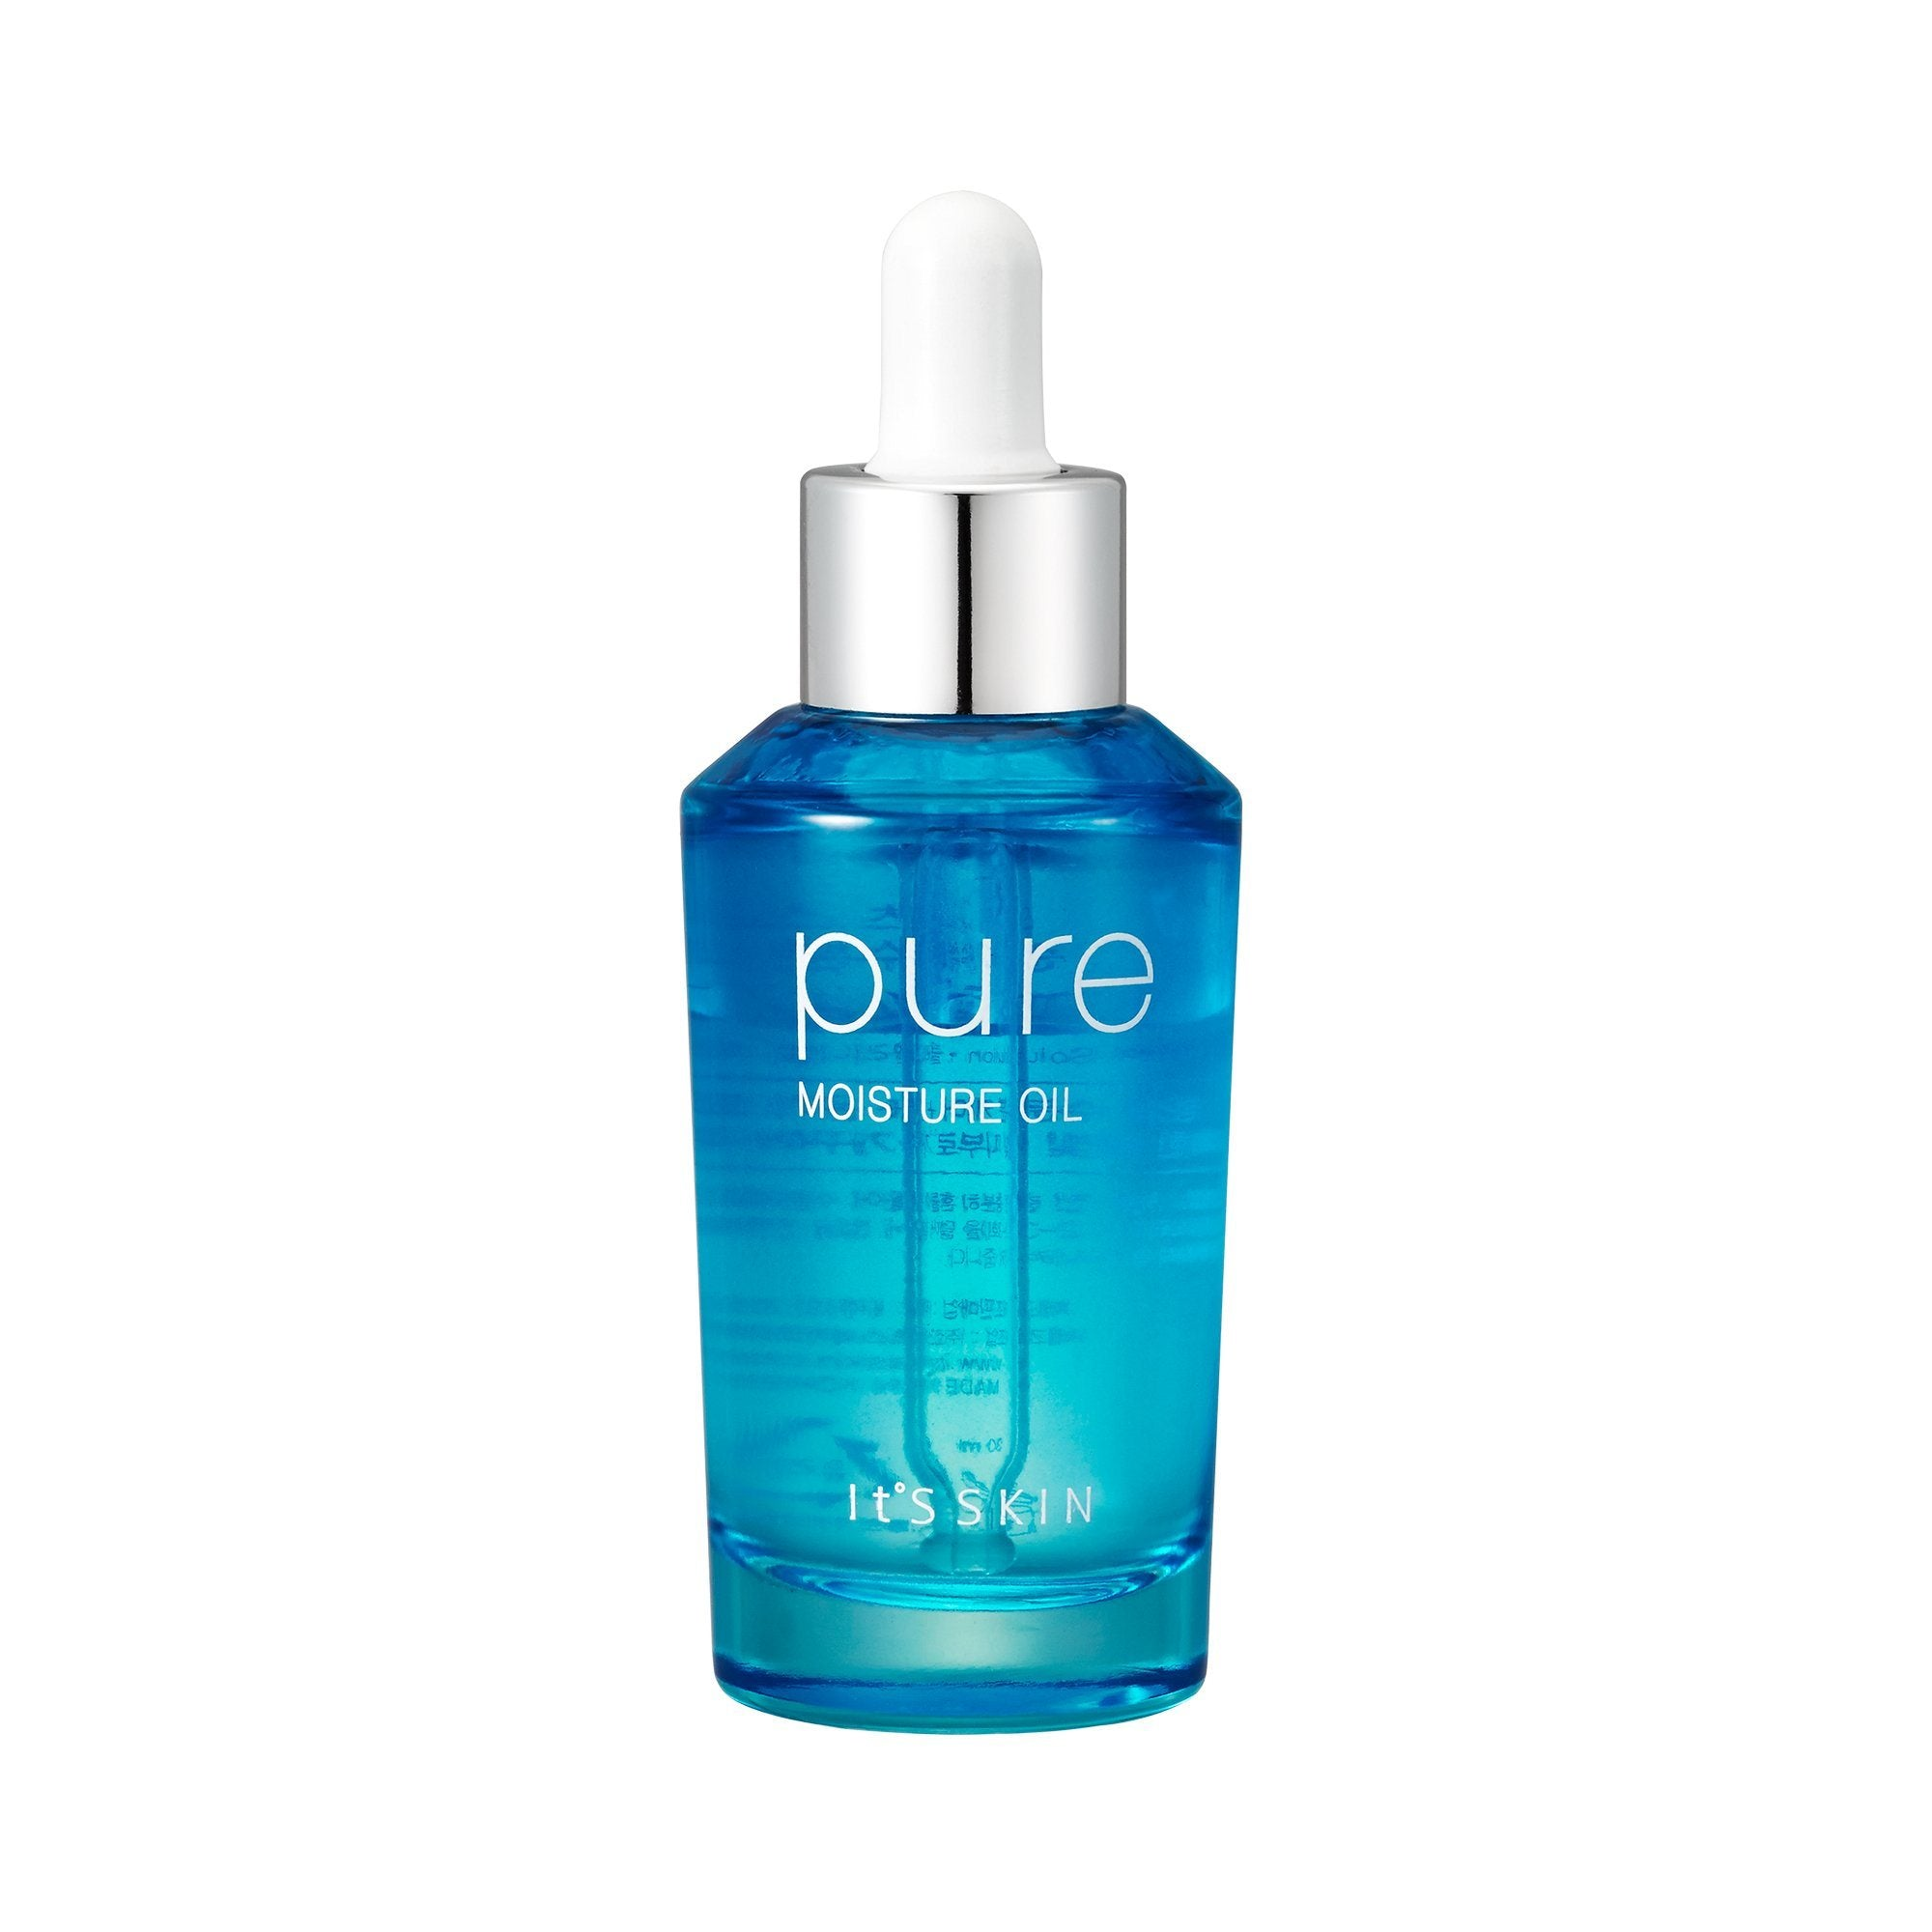 Health & Beauty > Personal Care > Cosmetics > Skin Care > Lotion & Moisturizer - Pure Moisture Oil Olejek Do Twarzy 30 Ml